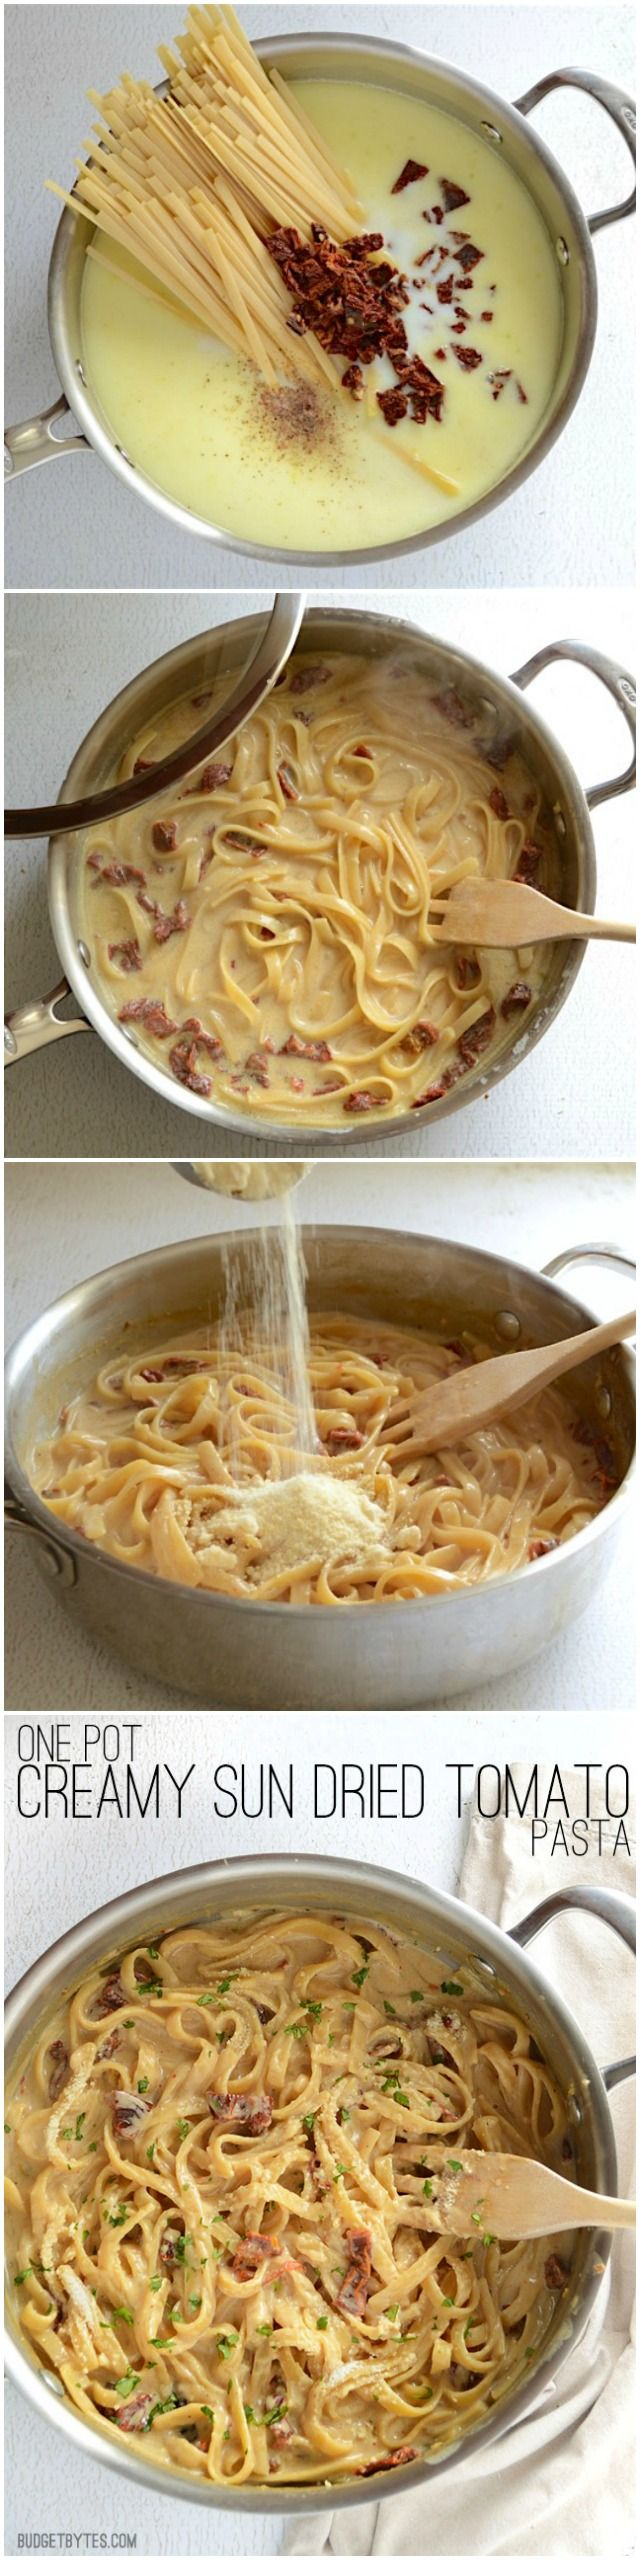 This incredibly fast and easy Creamy Sun Dried Tomato Pasta cooks in 30 minutes and uses just one pot. Make dinner delicious any night of the week! - BudgetBytes.com